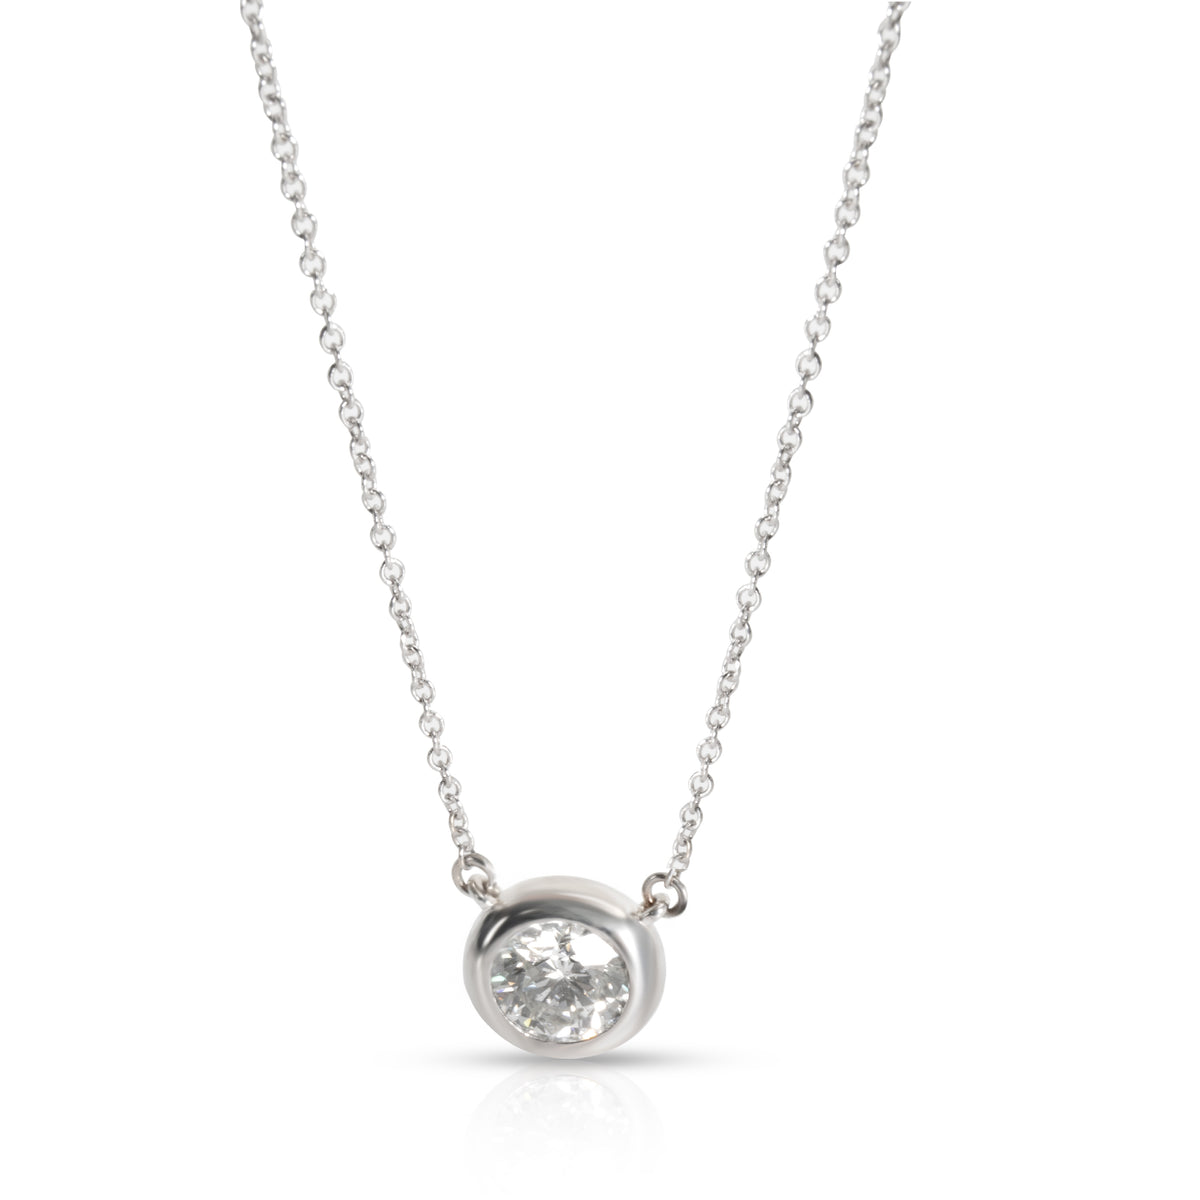 Diamond Bezel Set Solitaire Necklace in 14K White Gold H I2 (1.07 ct)